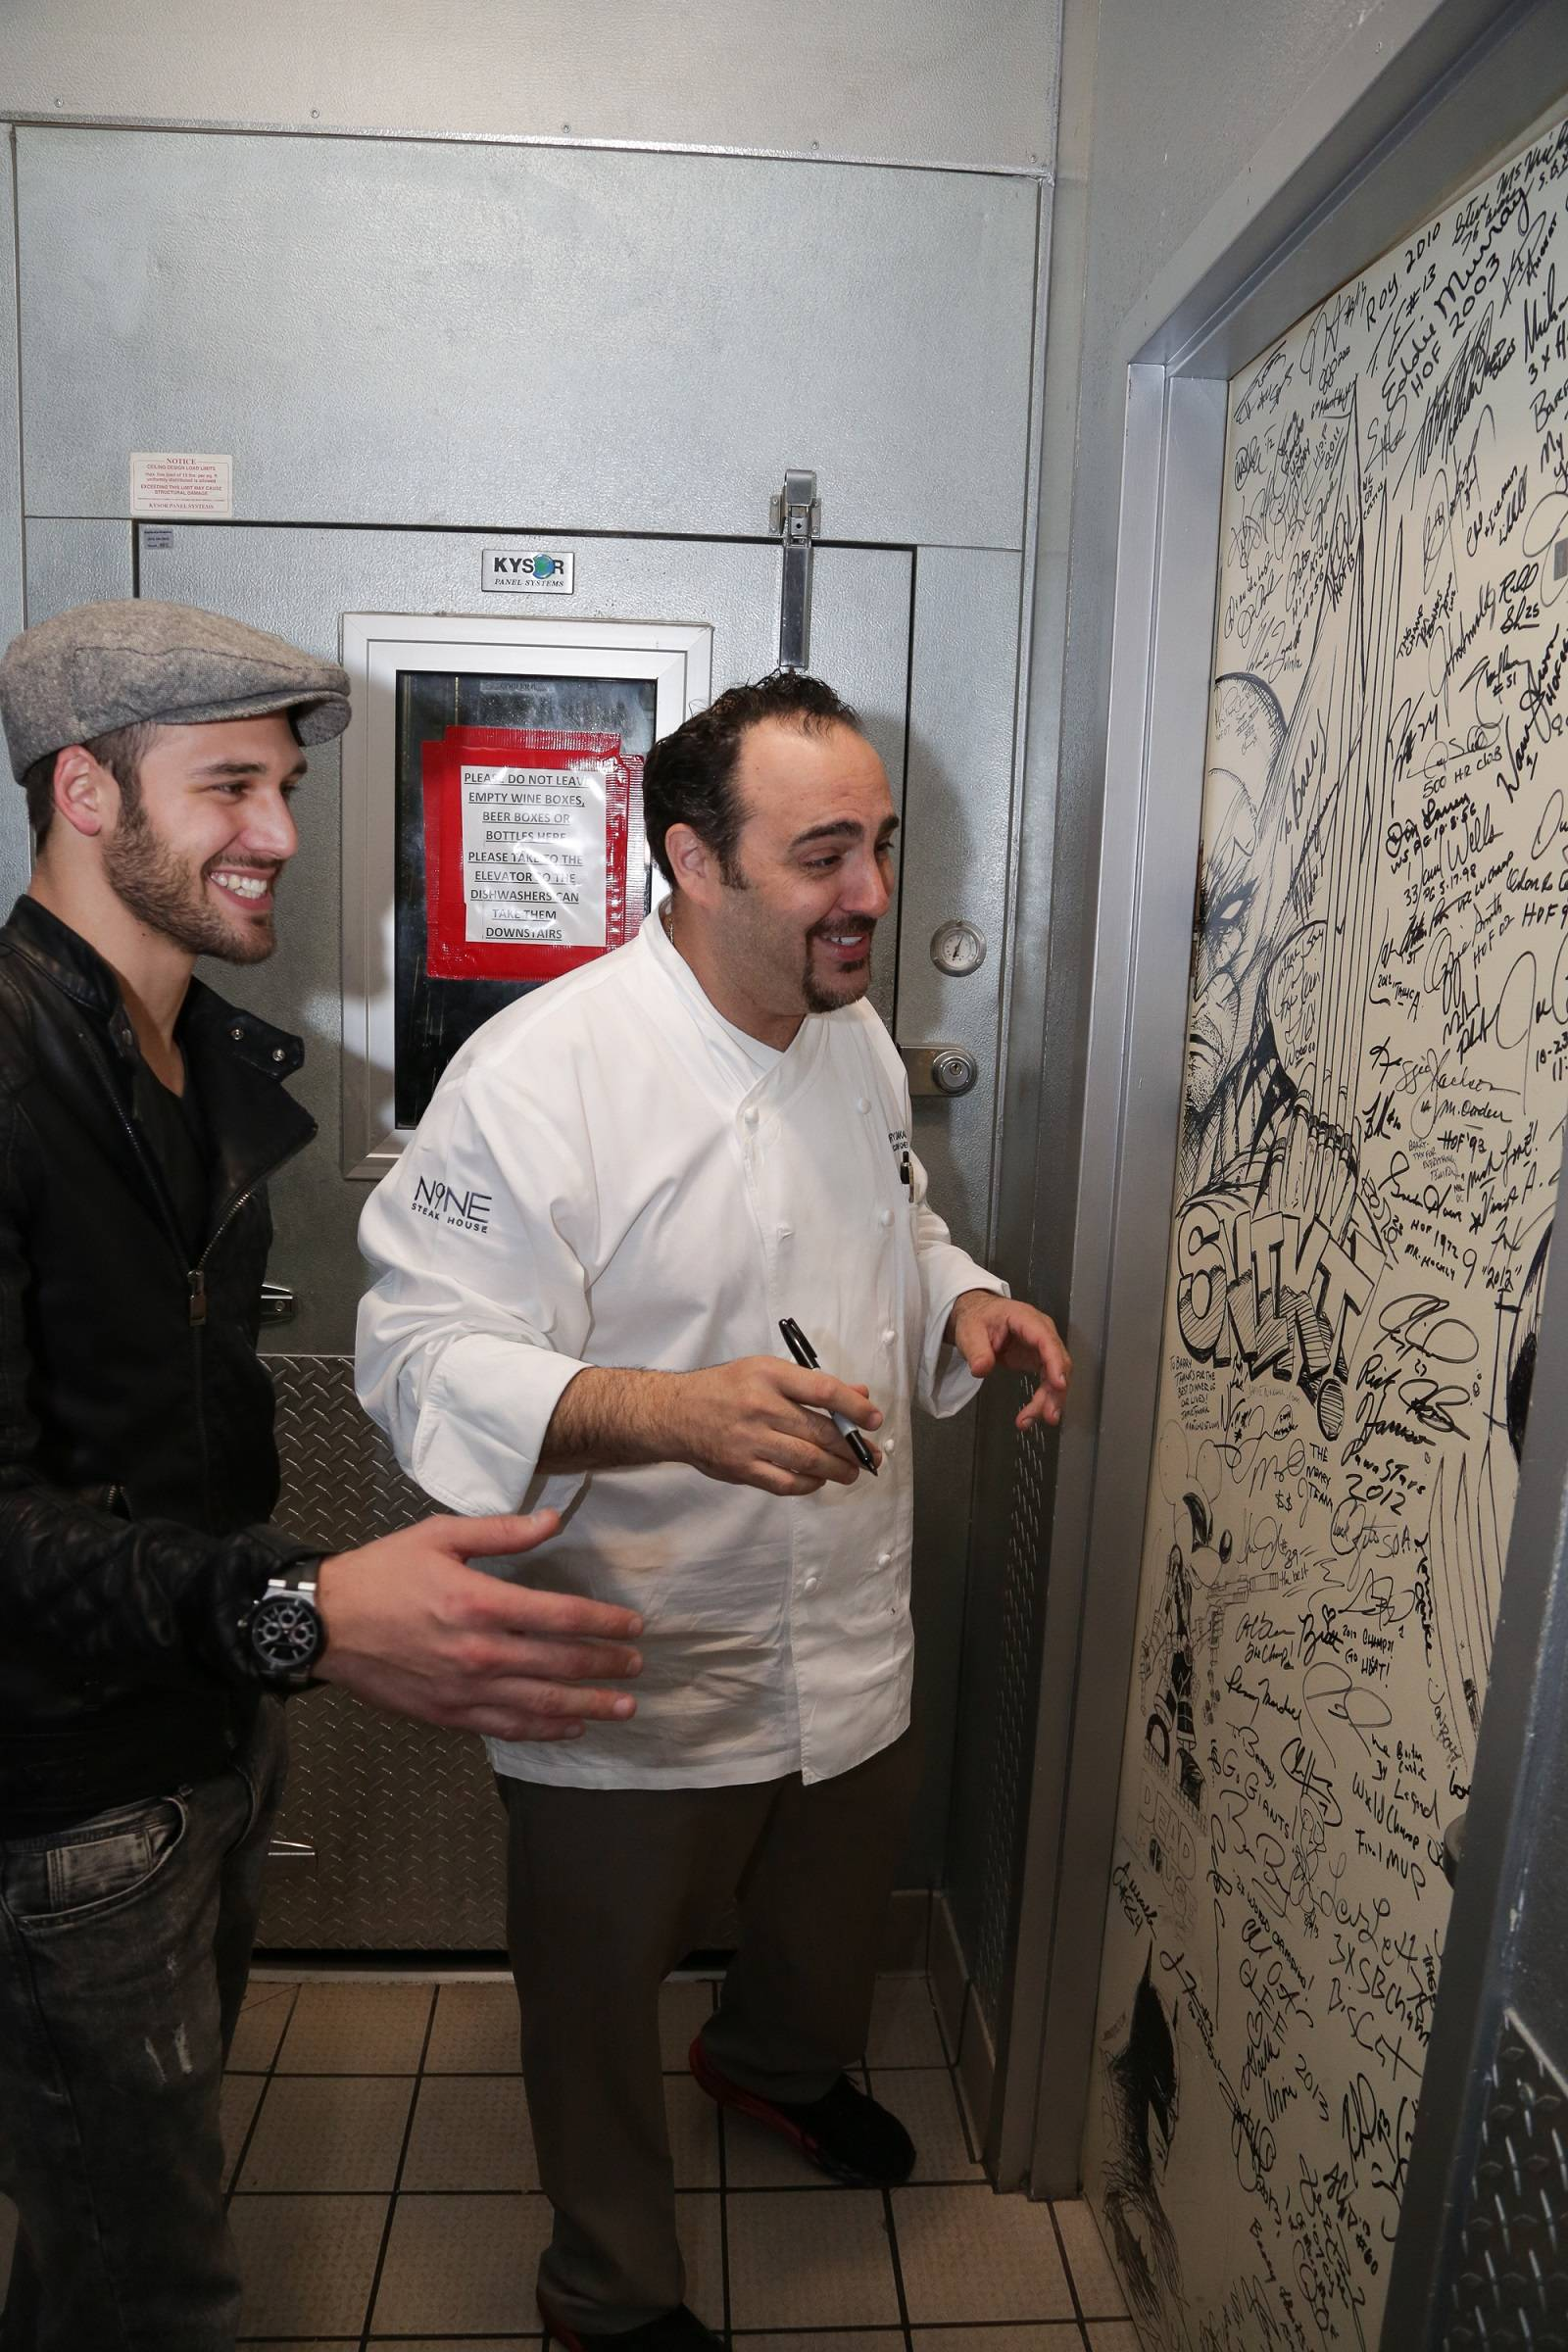 Ryan Guzman gets tour of Shakedown Door